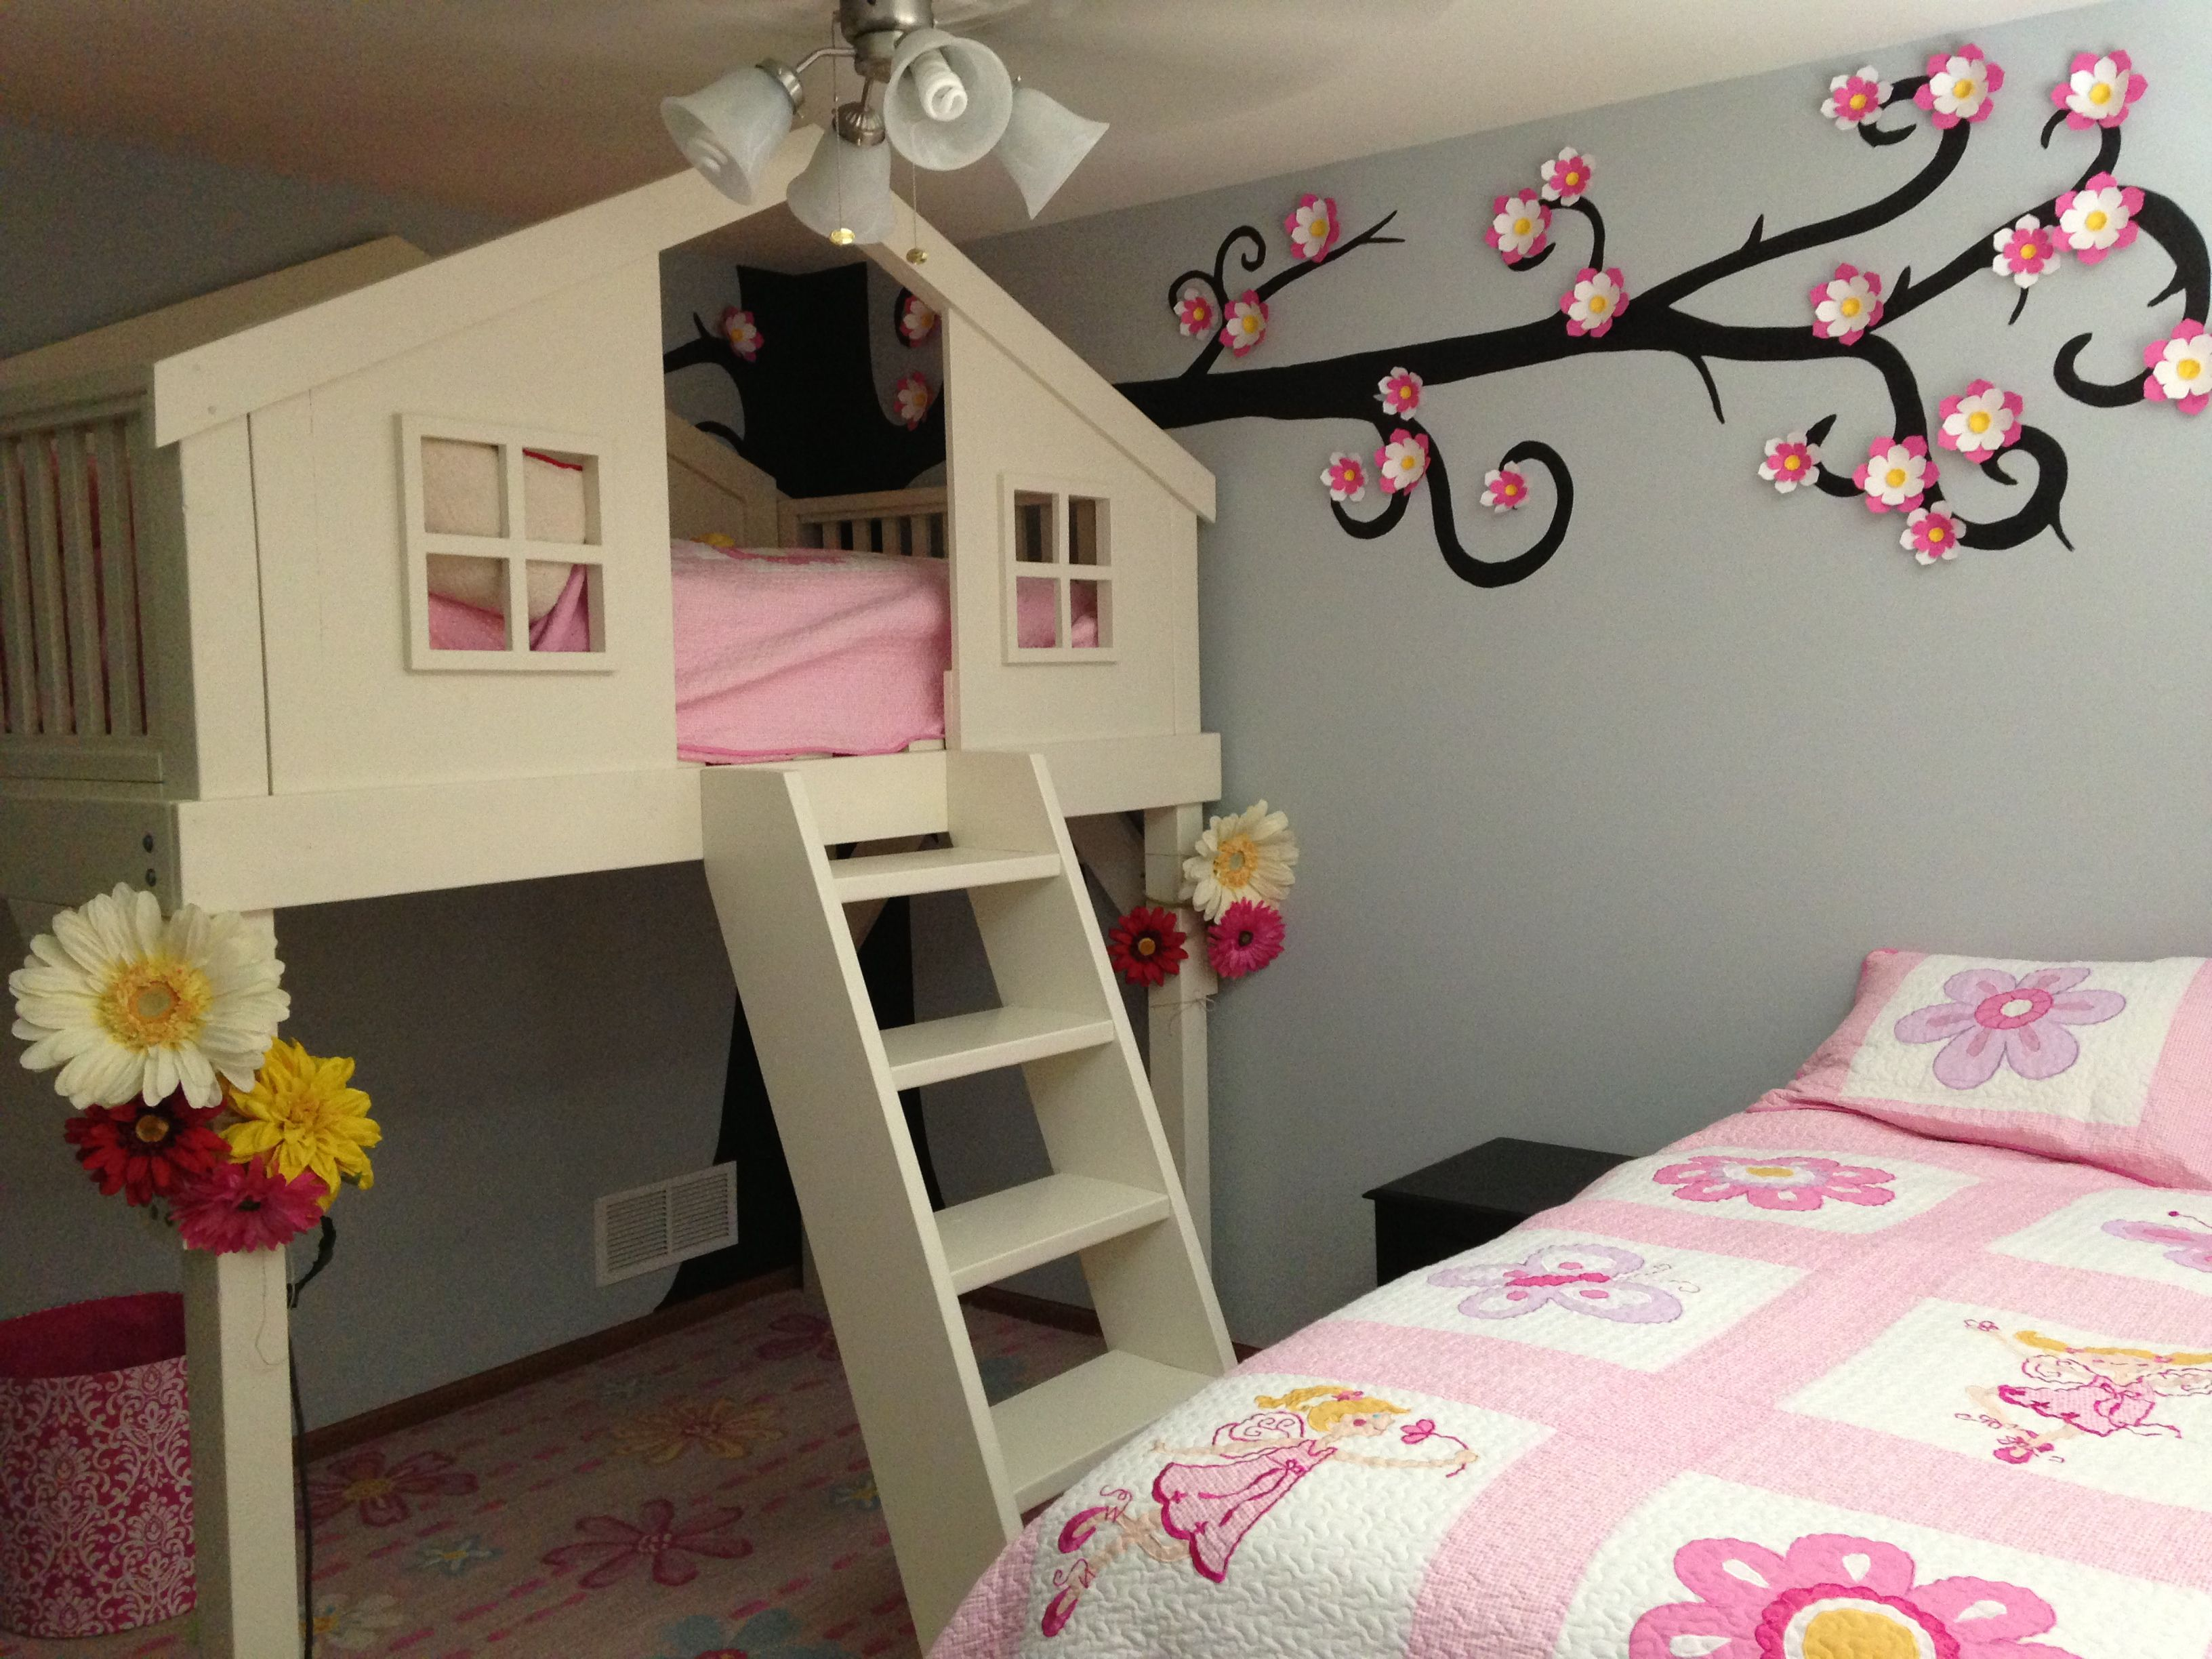 This is my daughters treehouse bedroom. We made the bed